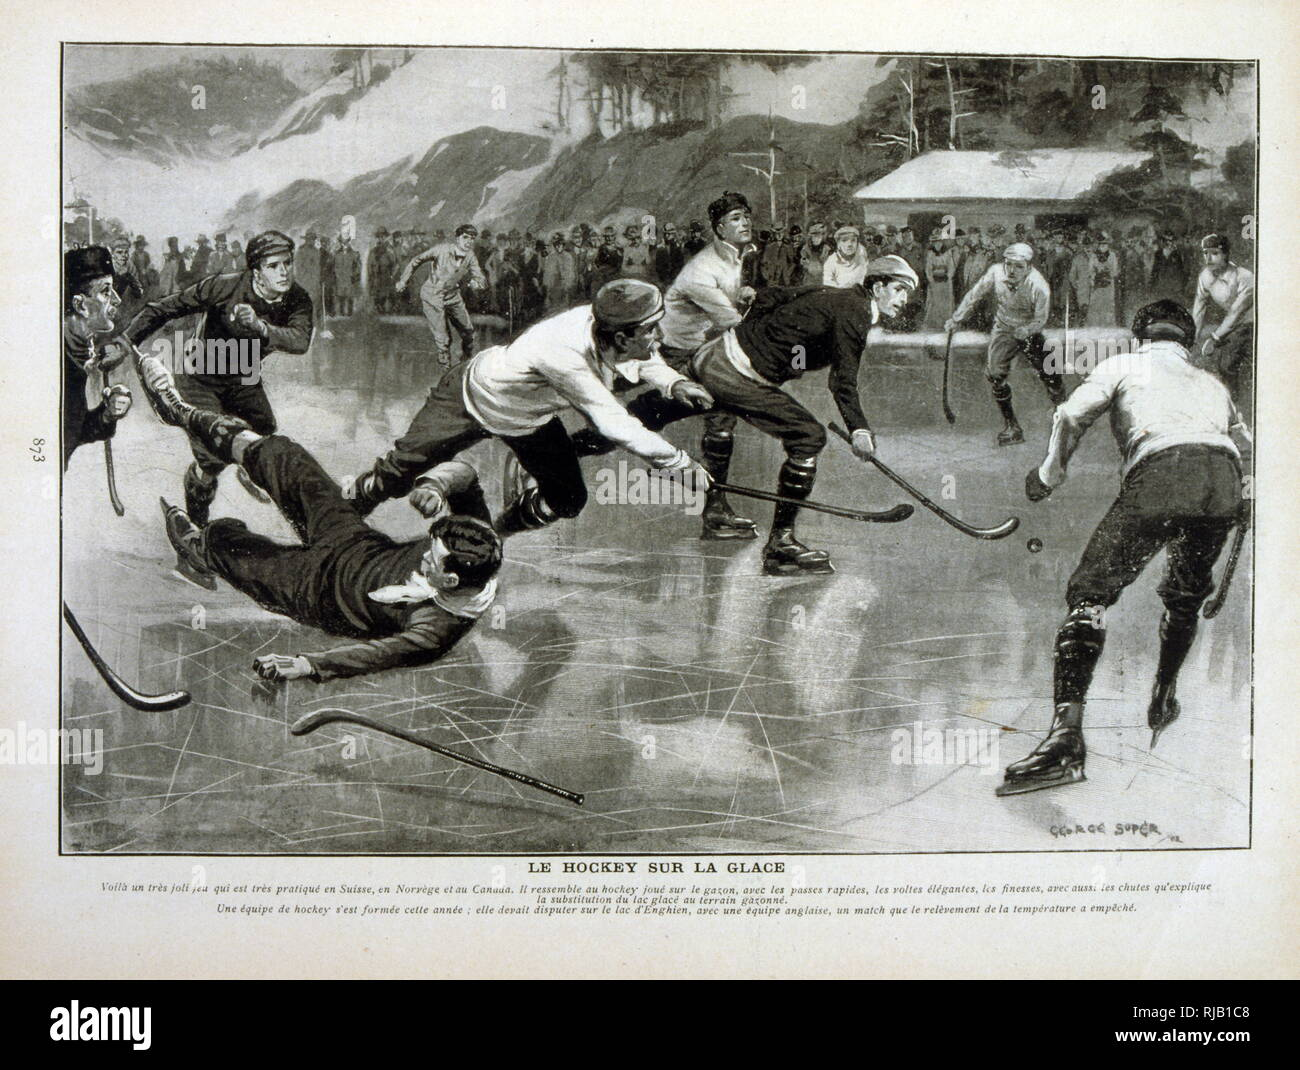 Ice hockey match in Switzerland between Norway and Canada 1902 - Stock Image